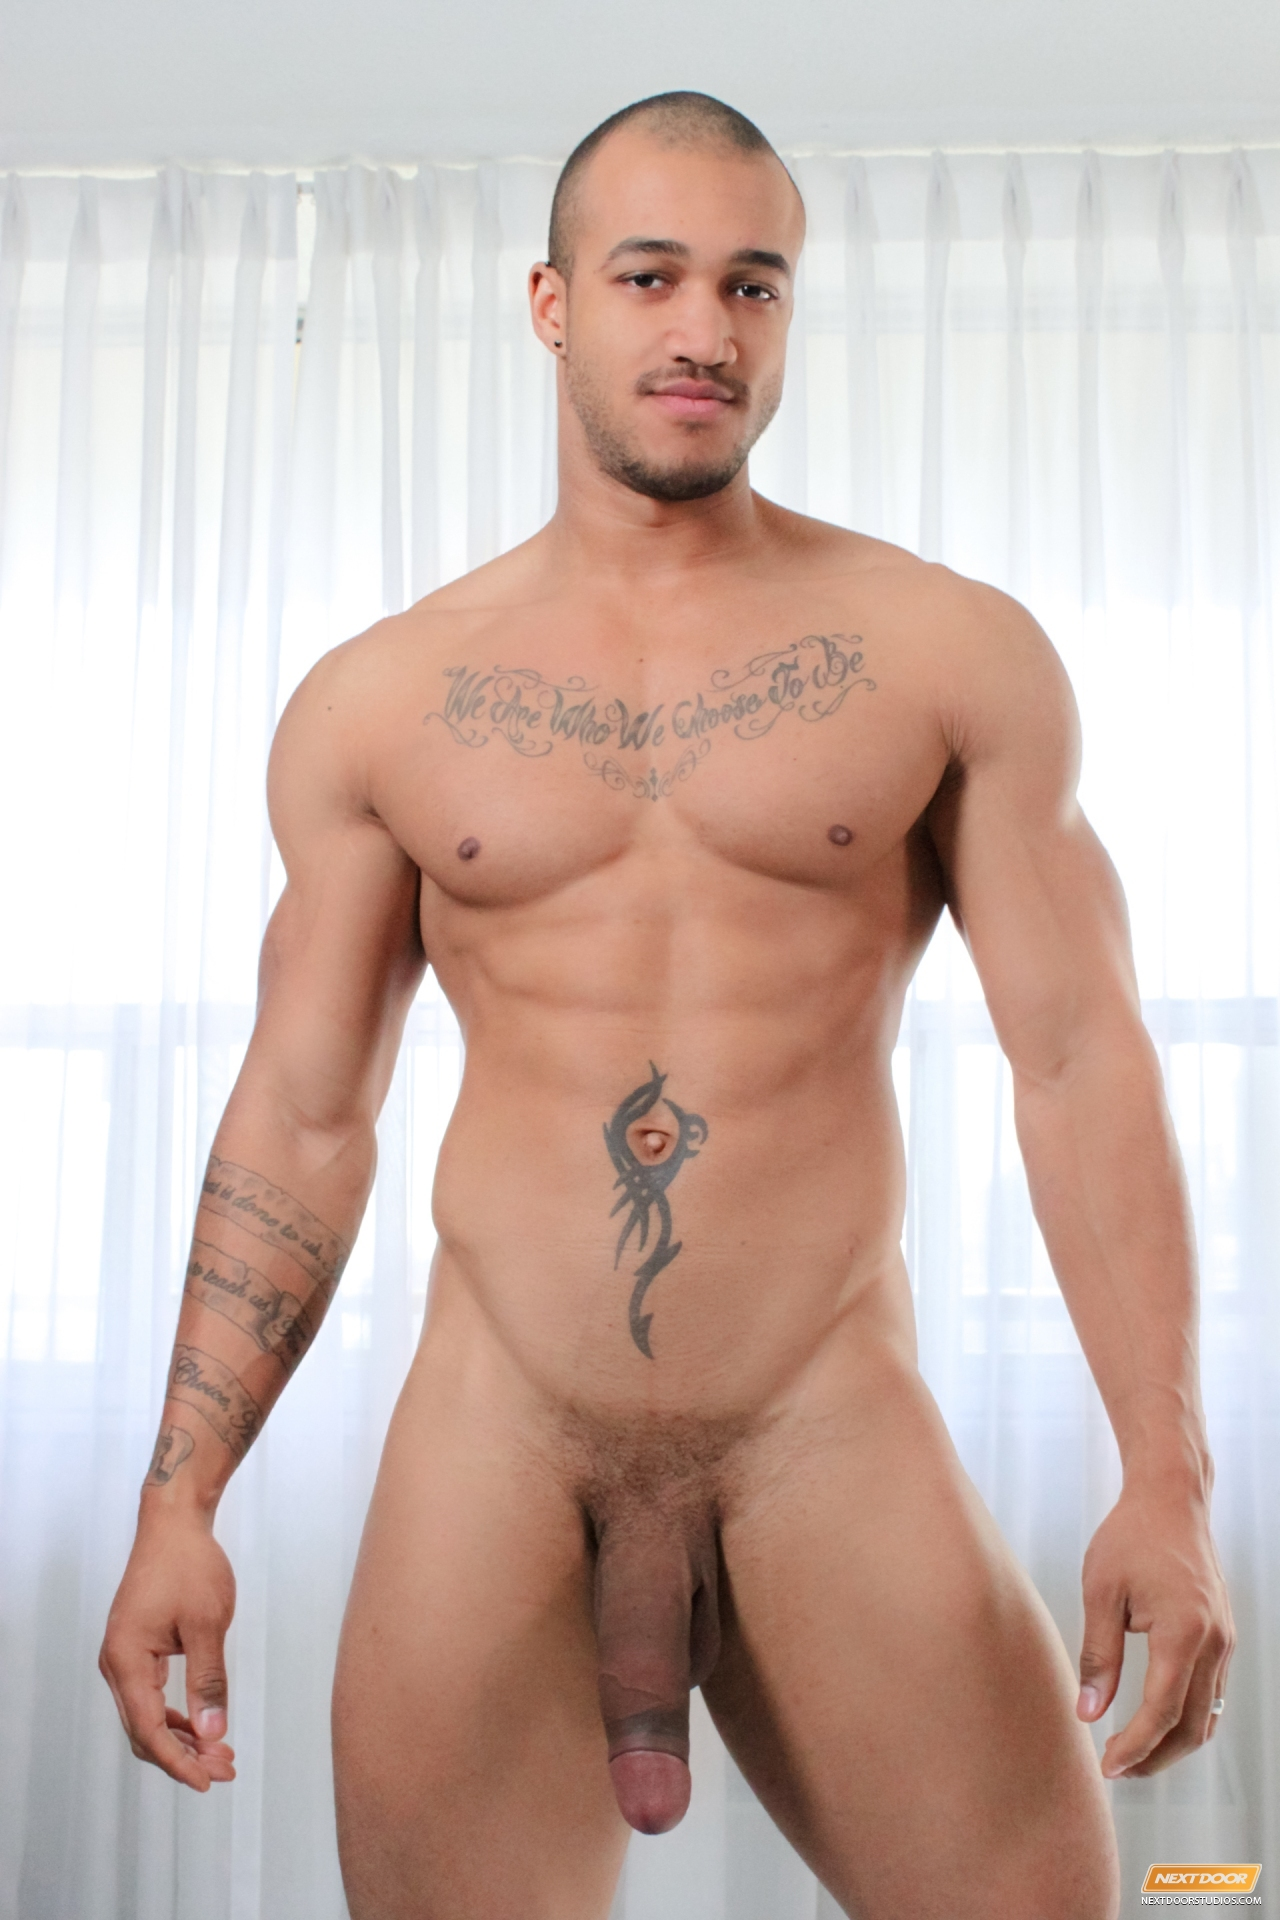 Kiern Duecan and Zane West fuck Damian Brooks in a threesome for gay porn site Next Door Ebony.